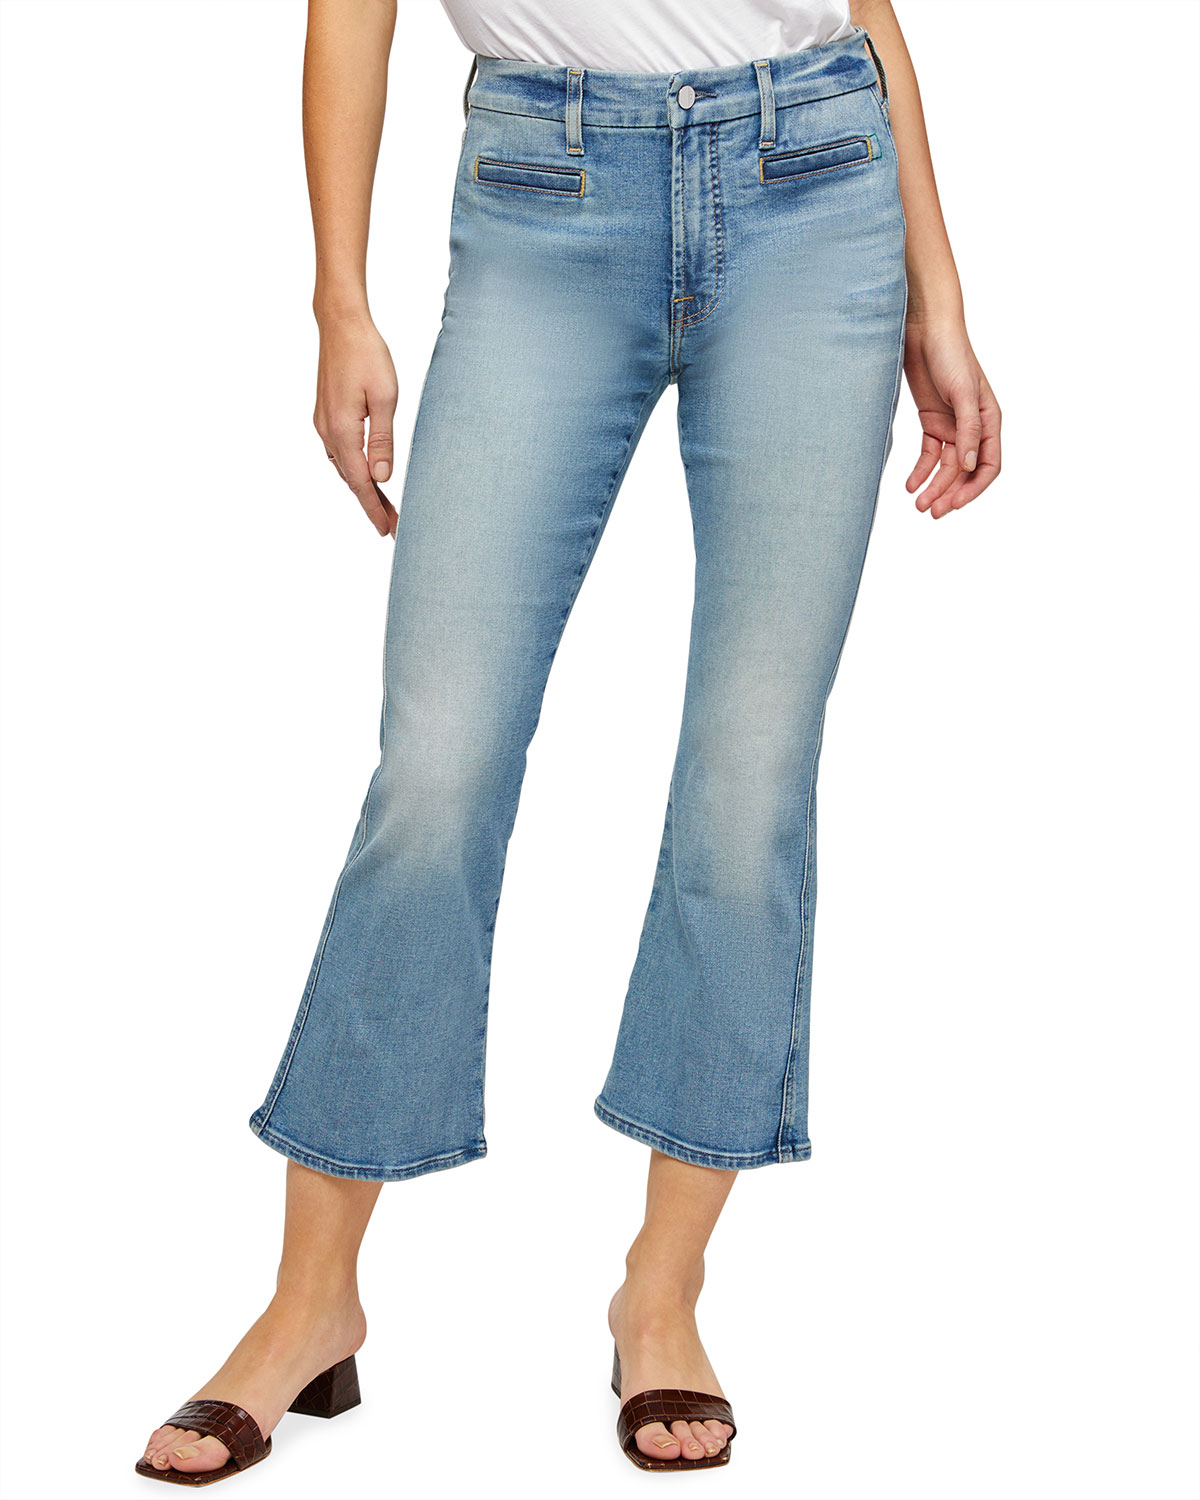 Jen7 CROPPED KICK FLARE JEANS WITH WELT POCKETS